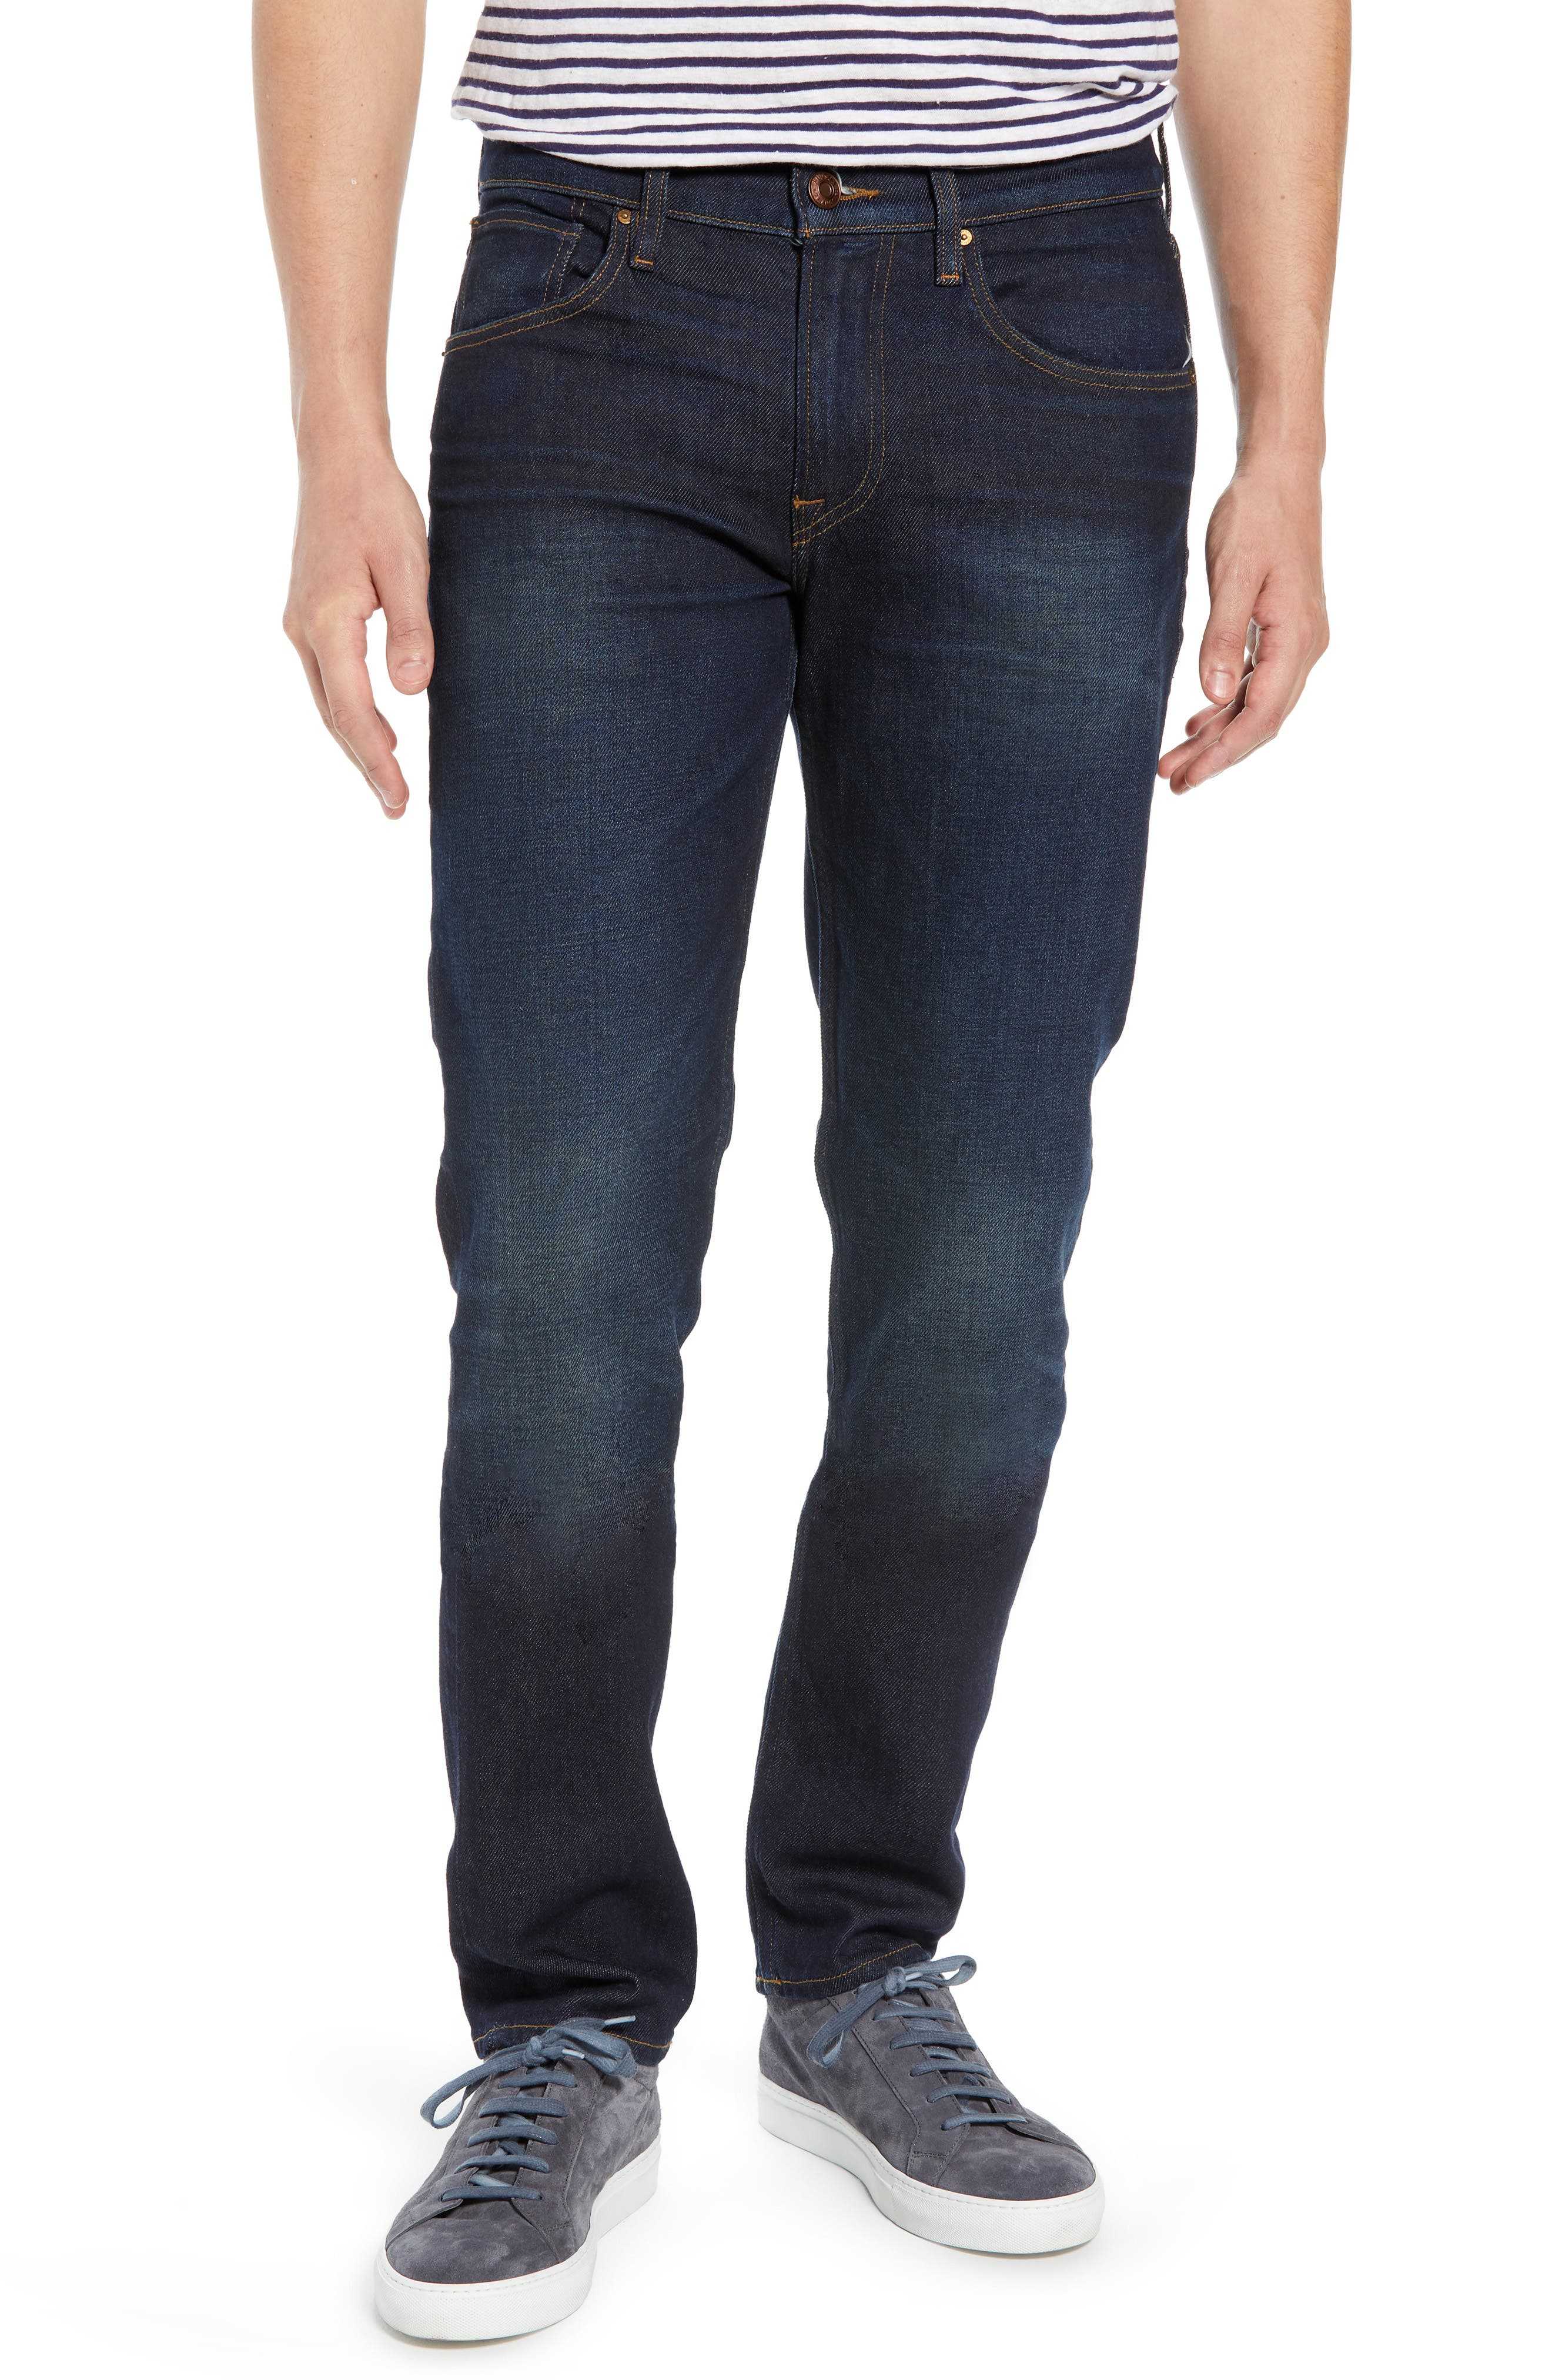 HUDSON JEANS Blake Slim Fit Jeans, Main, color, VERKLER